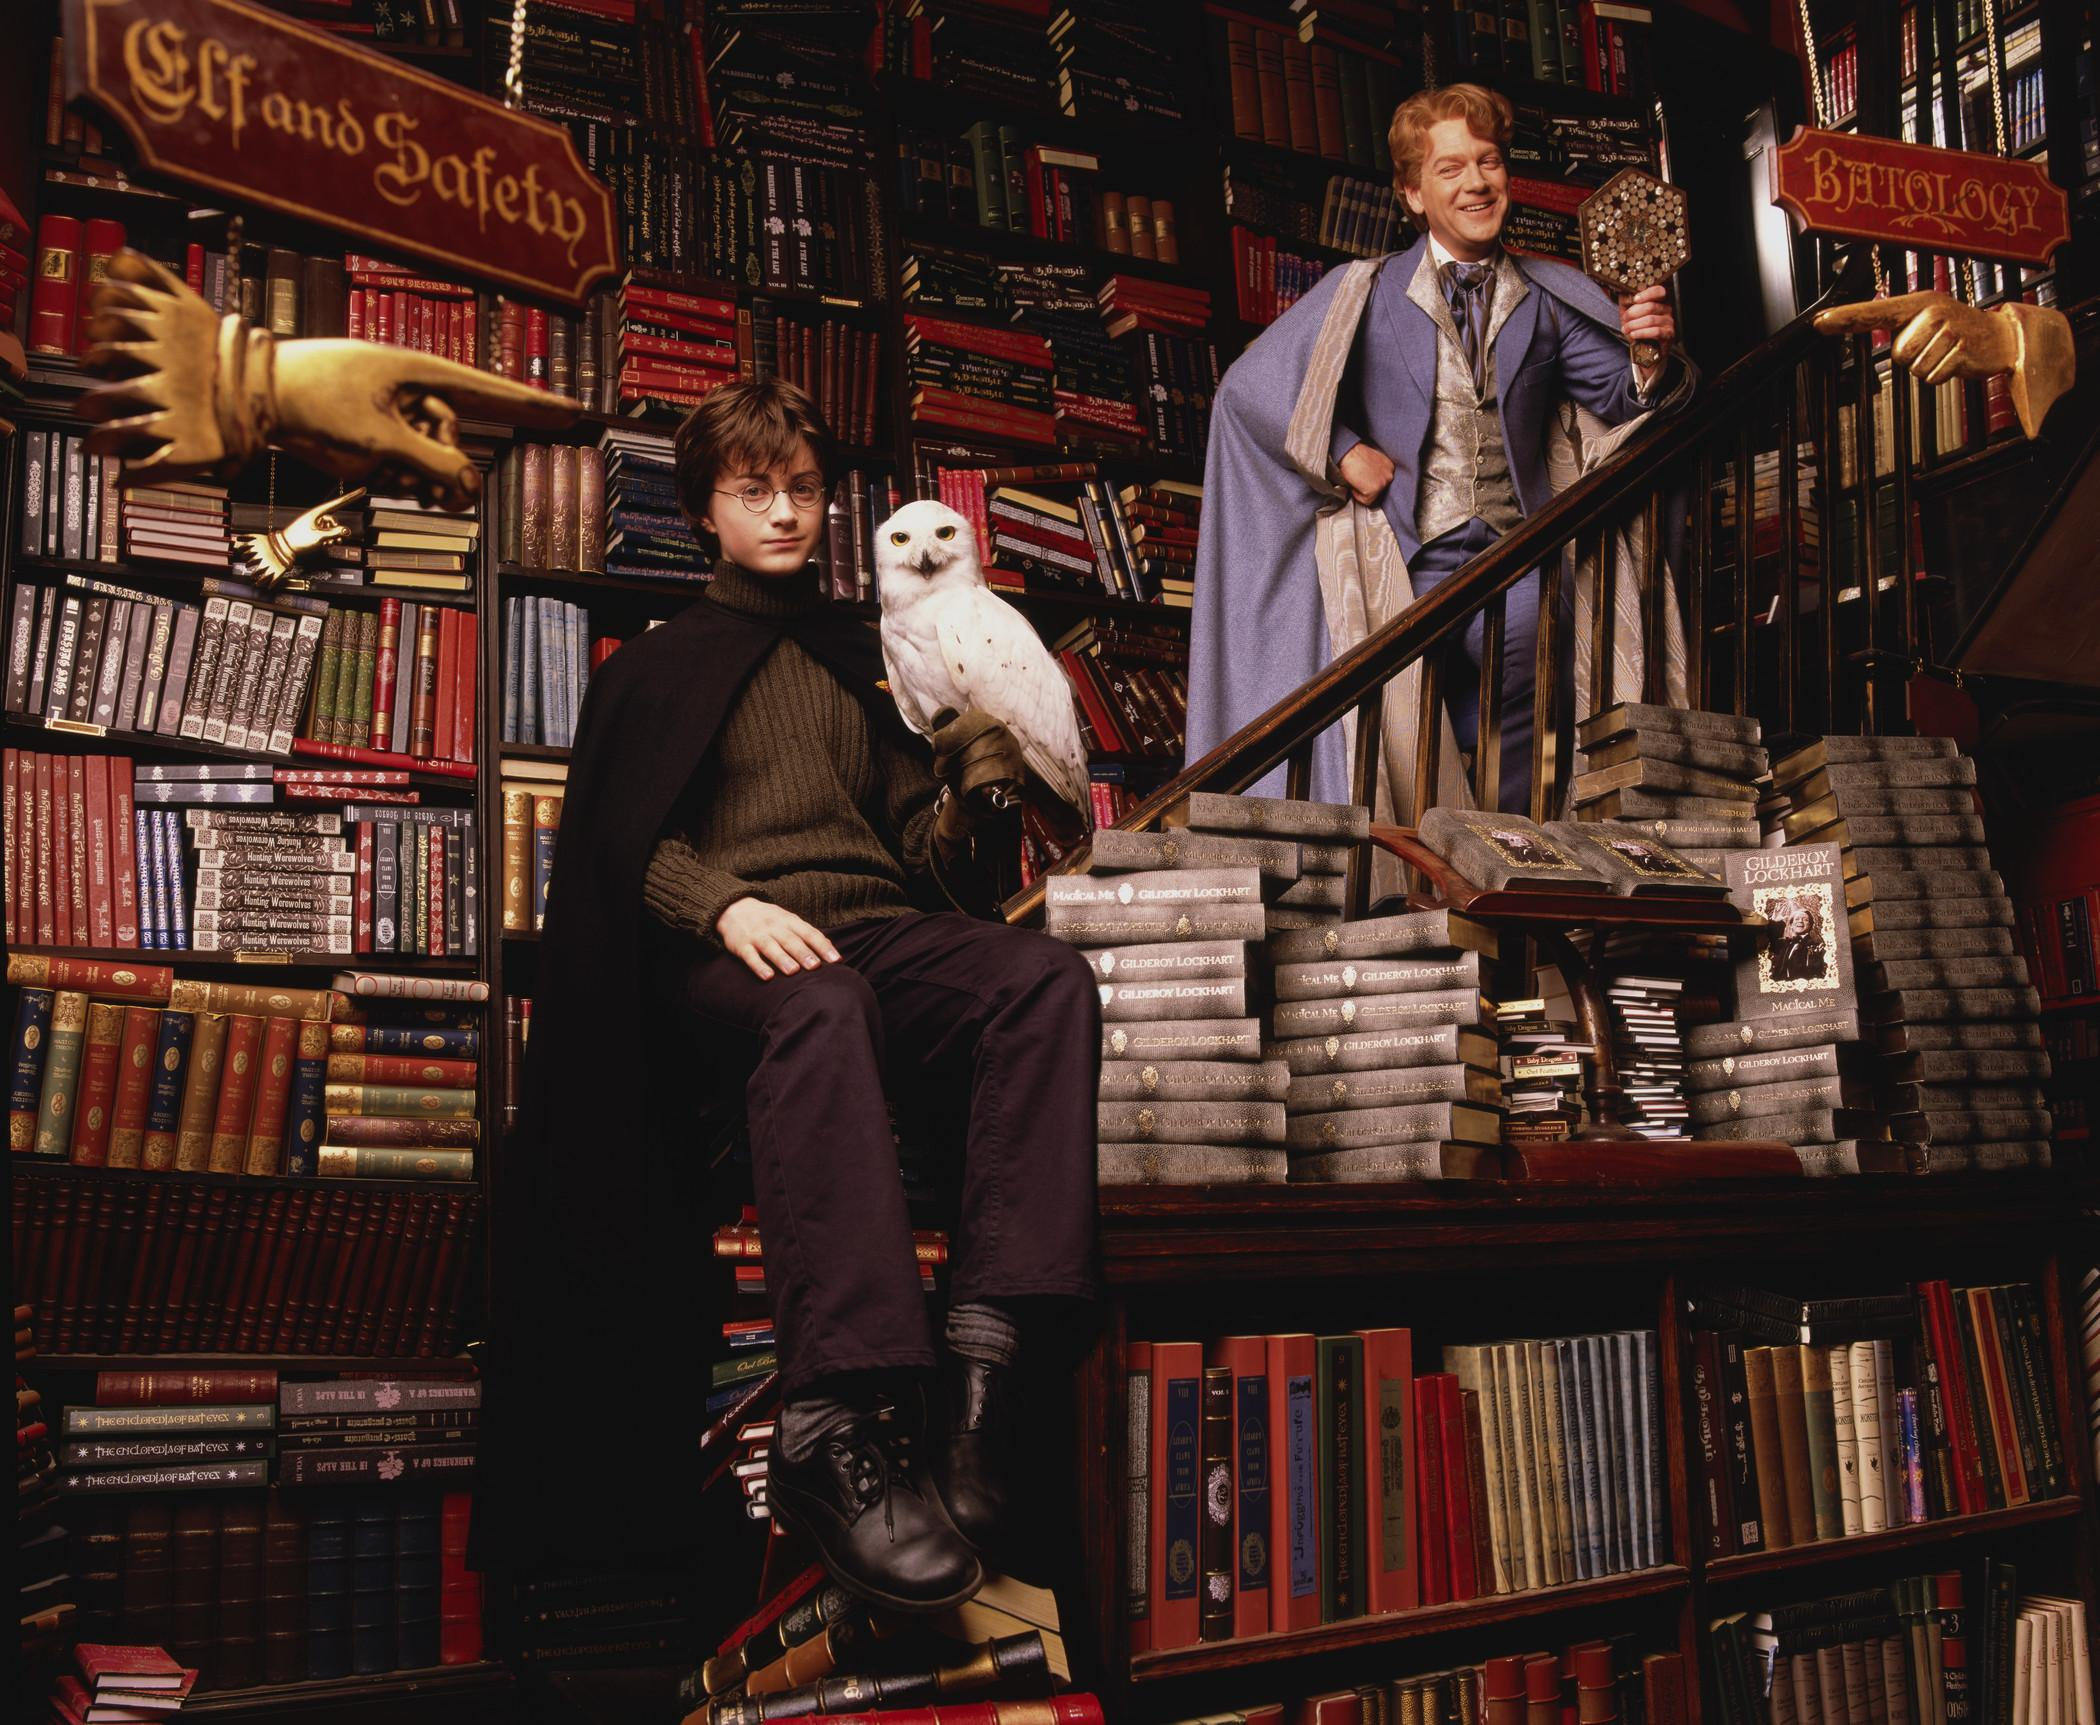 Amazing Wallpaper Harry Potter Library - latest?cb\u003d20100223223439  Image_909126.jpg/revision/latest?cb\u003d20100223223439